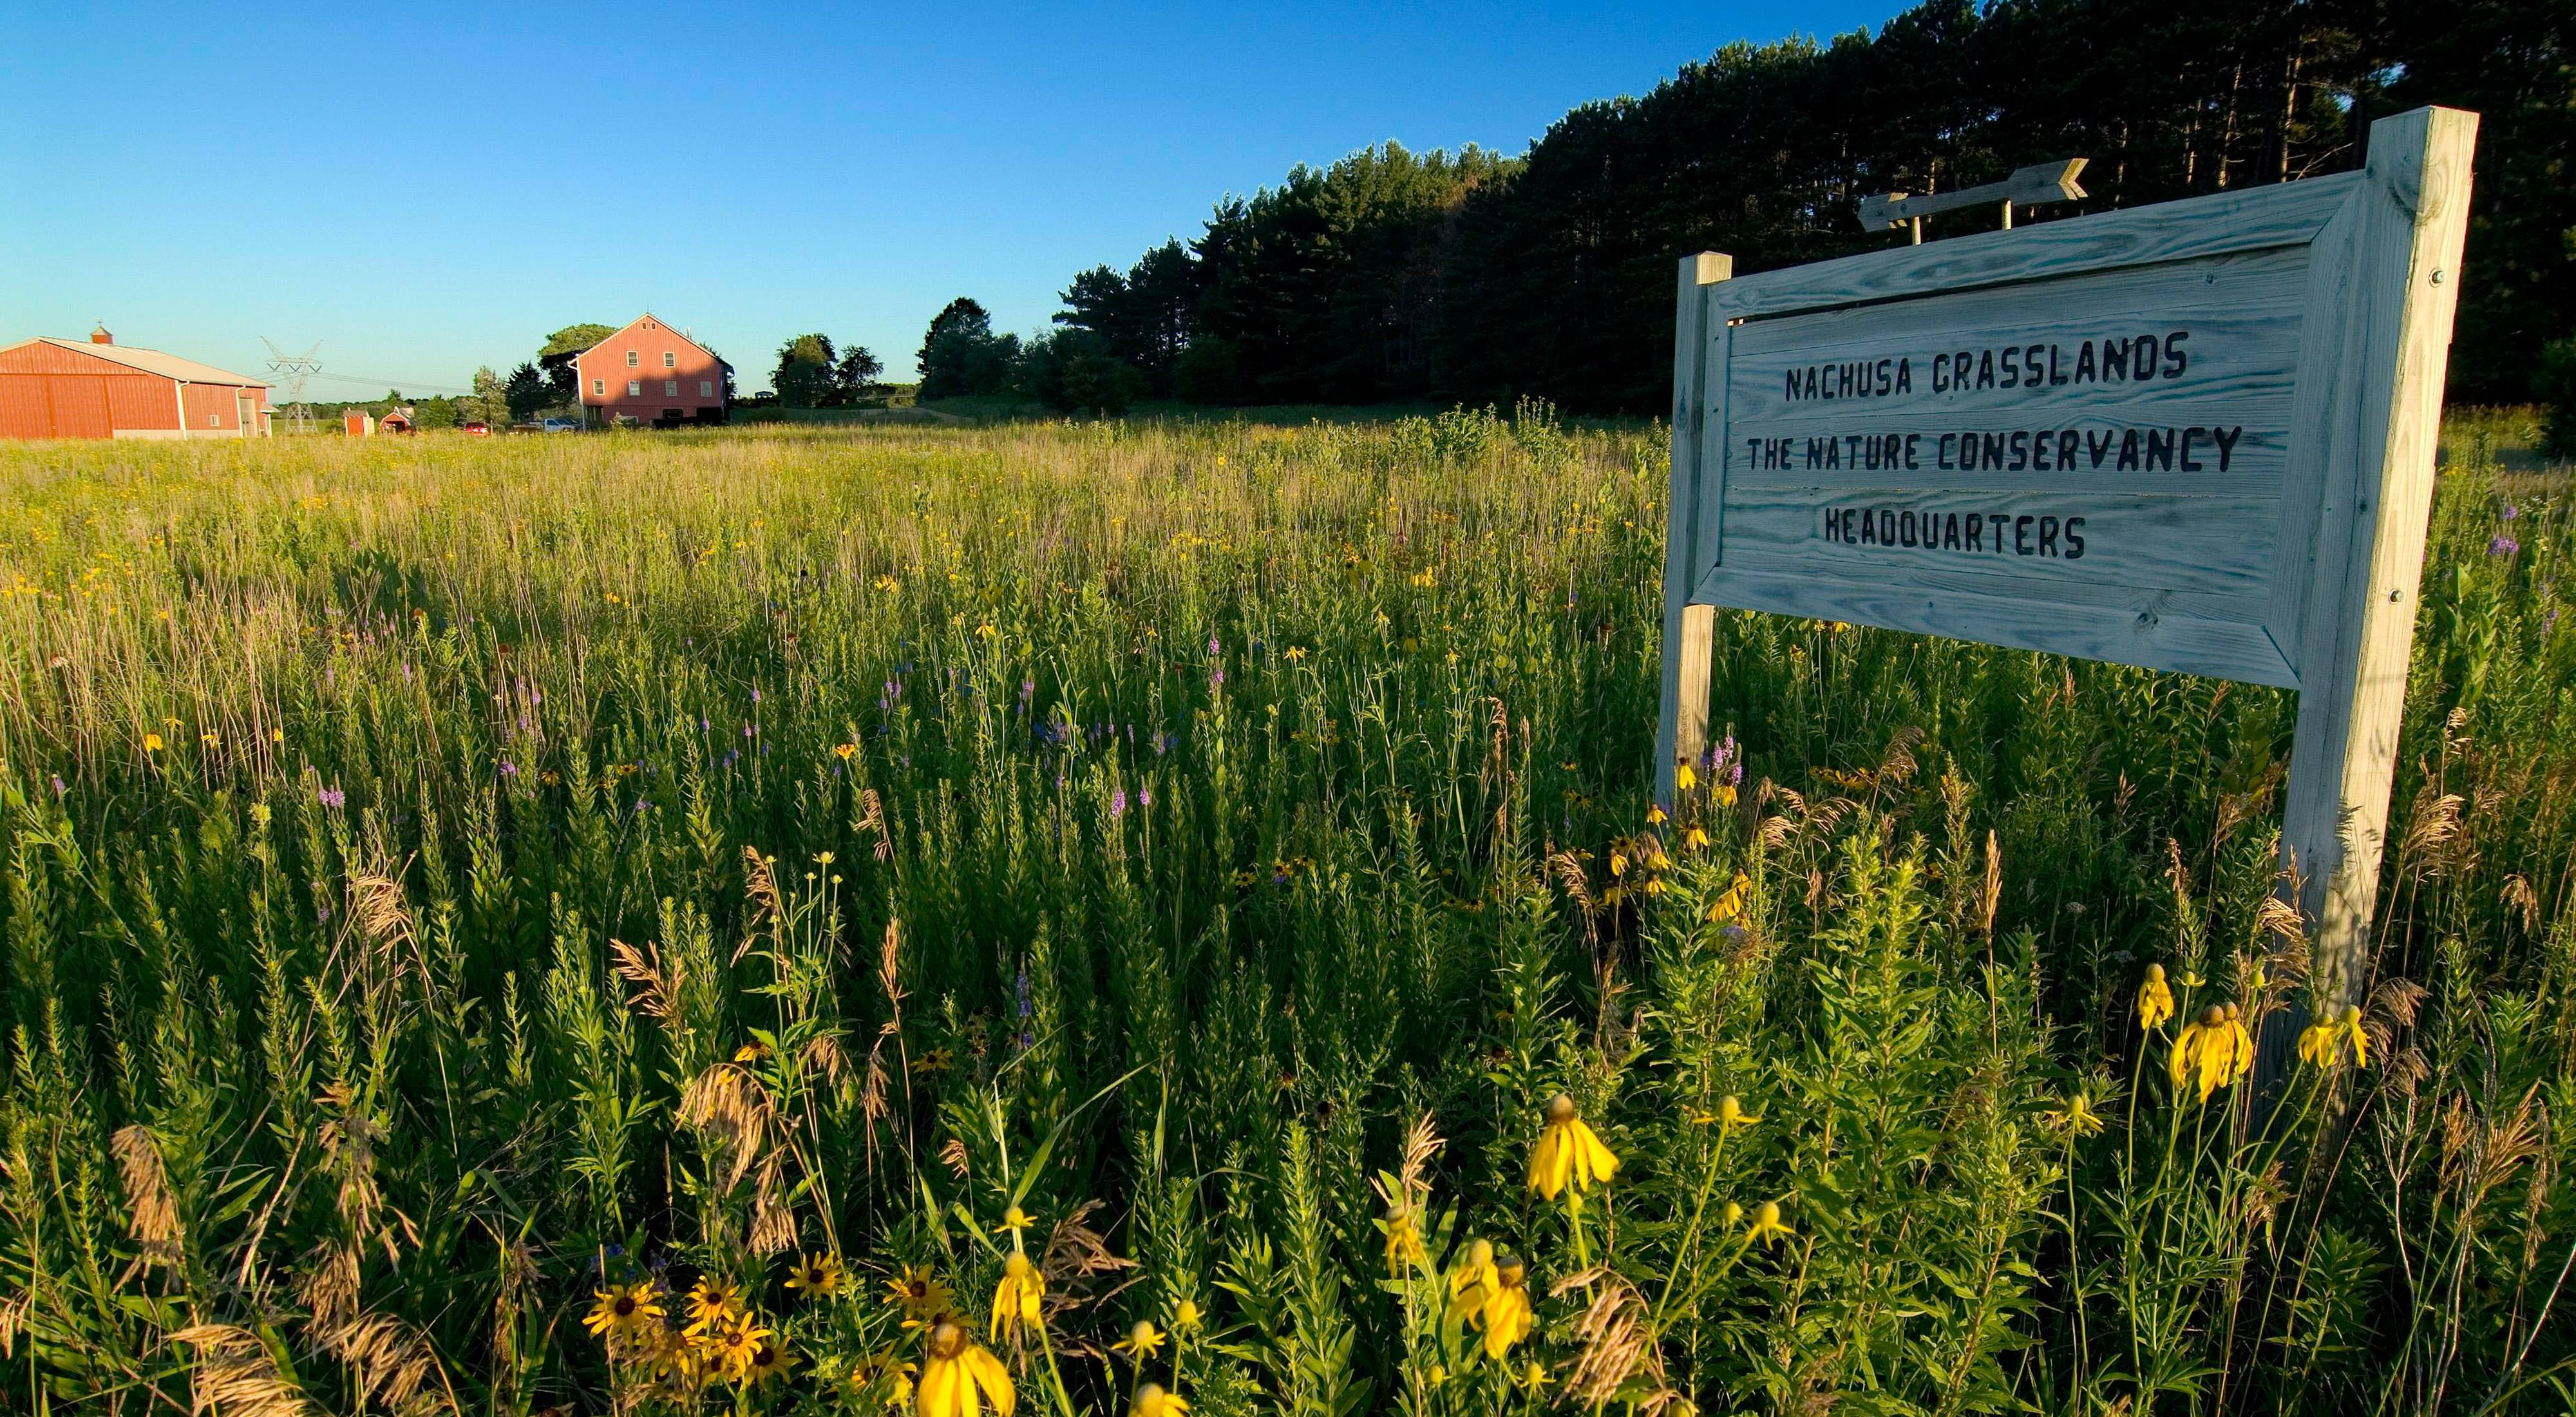 A sign stands in the prairie reading Nachusa Grasslands, The Nature Conservancy Headquarters.